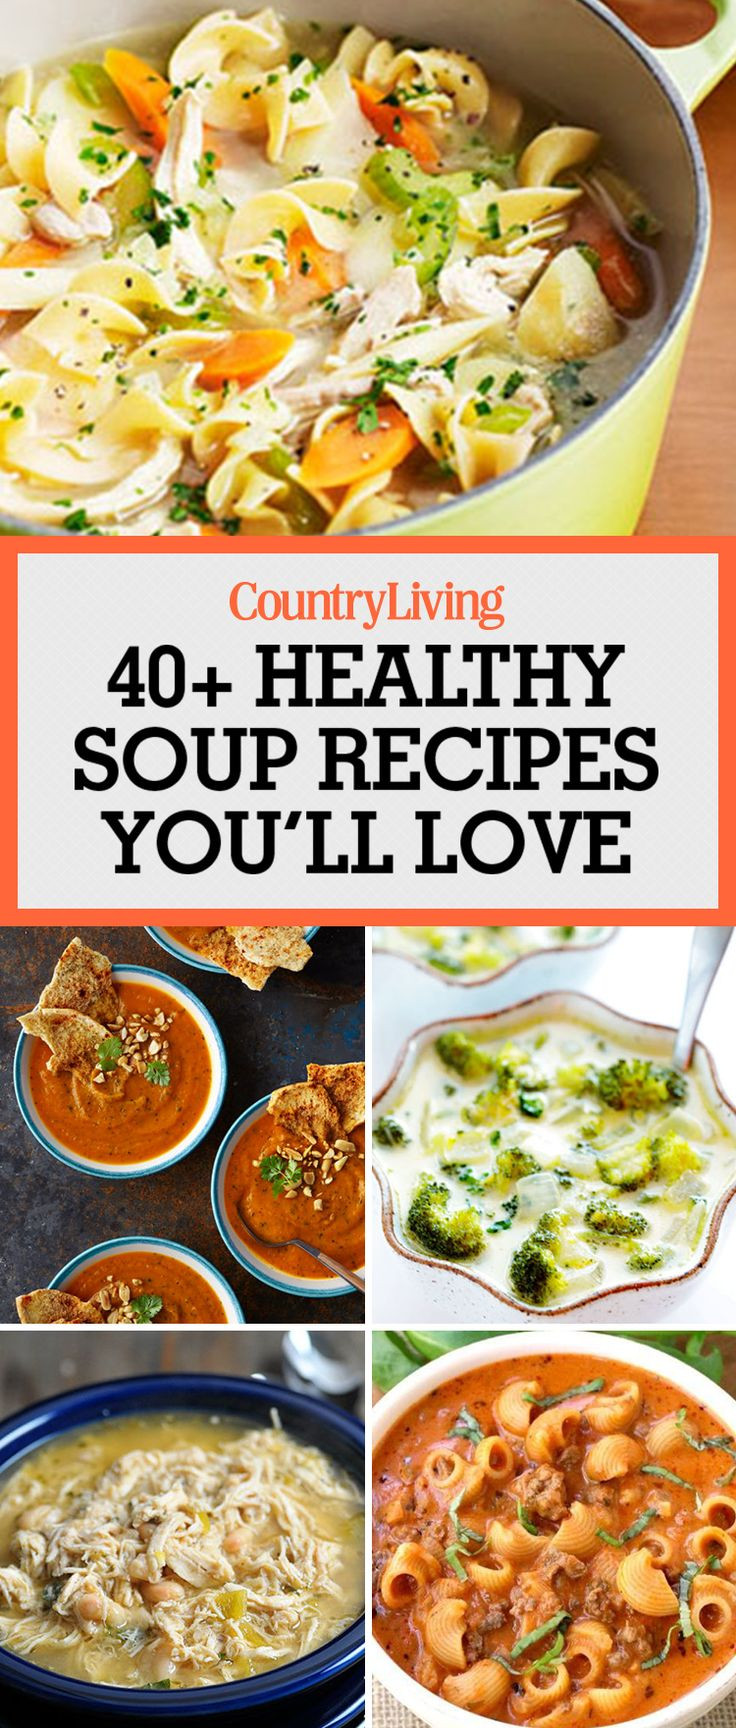 Healthy Soups To Make  53 Healthy Soup Recipes to Make Tonight